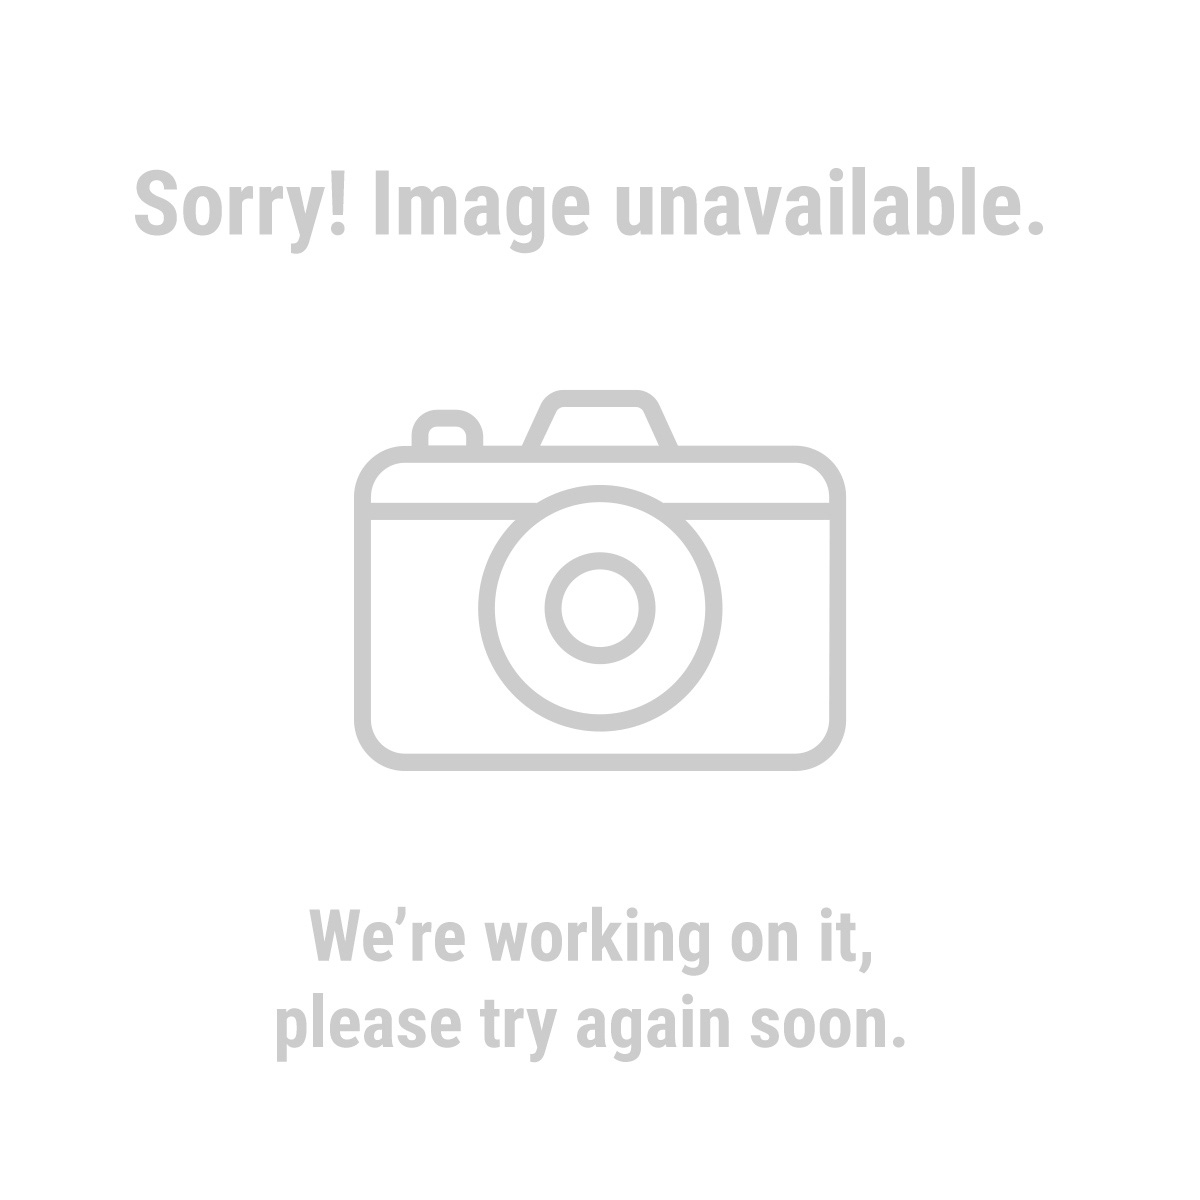 Harbor Freight Tools 69568 24 Piece AA Alkaline Batteries